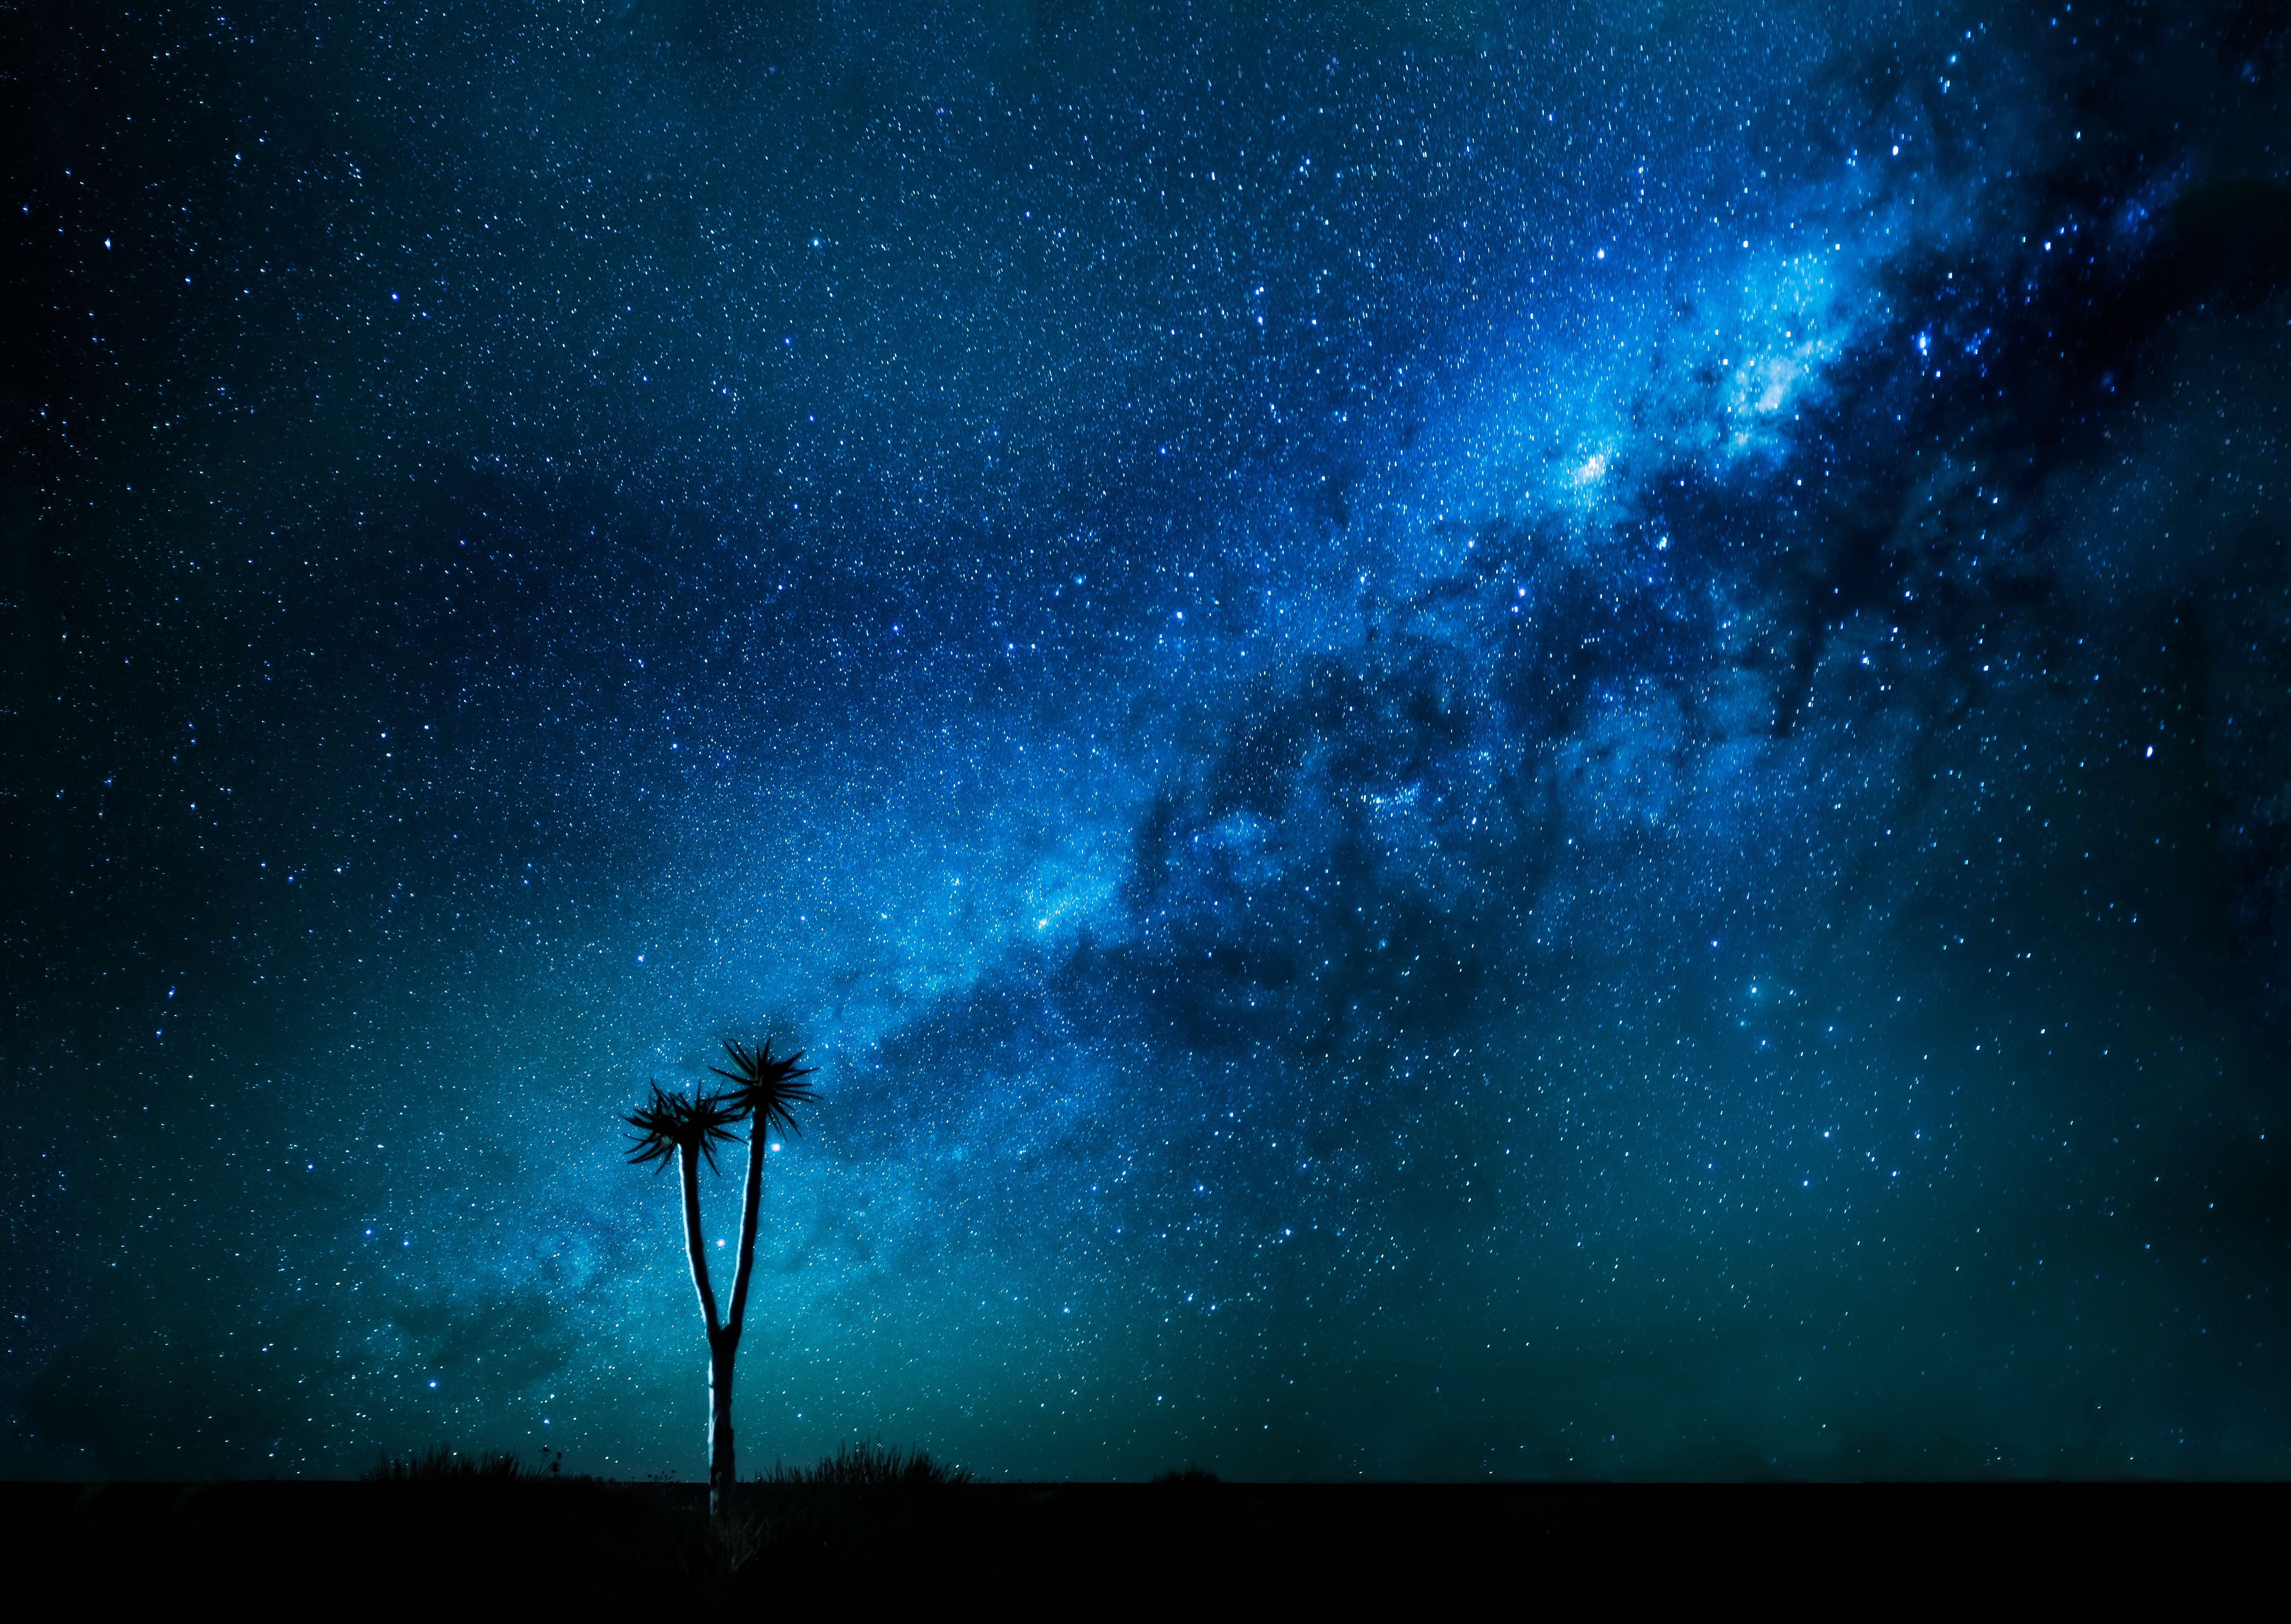 Top 10 3d Wallpapers For Android Milkyway 8k Hd Digital Universe 4k Wallpapers Images